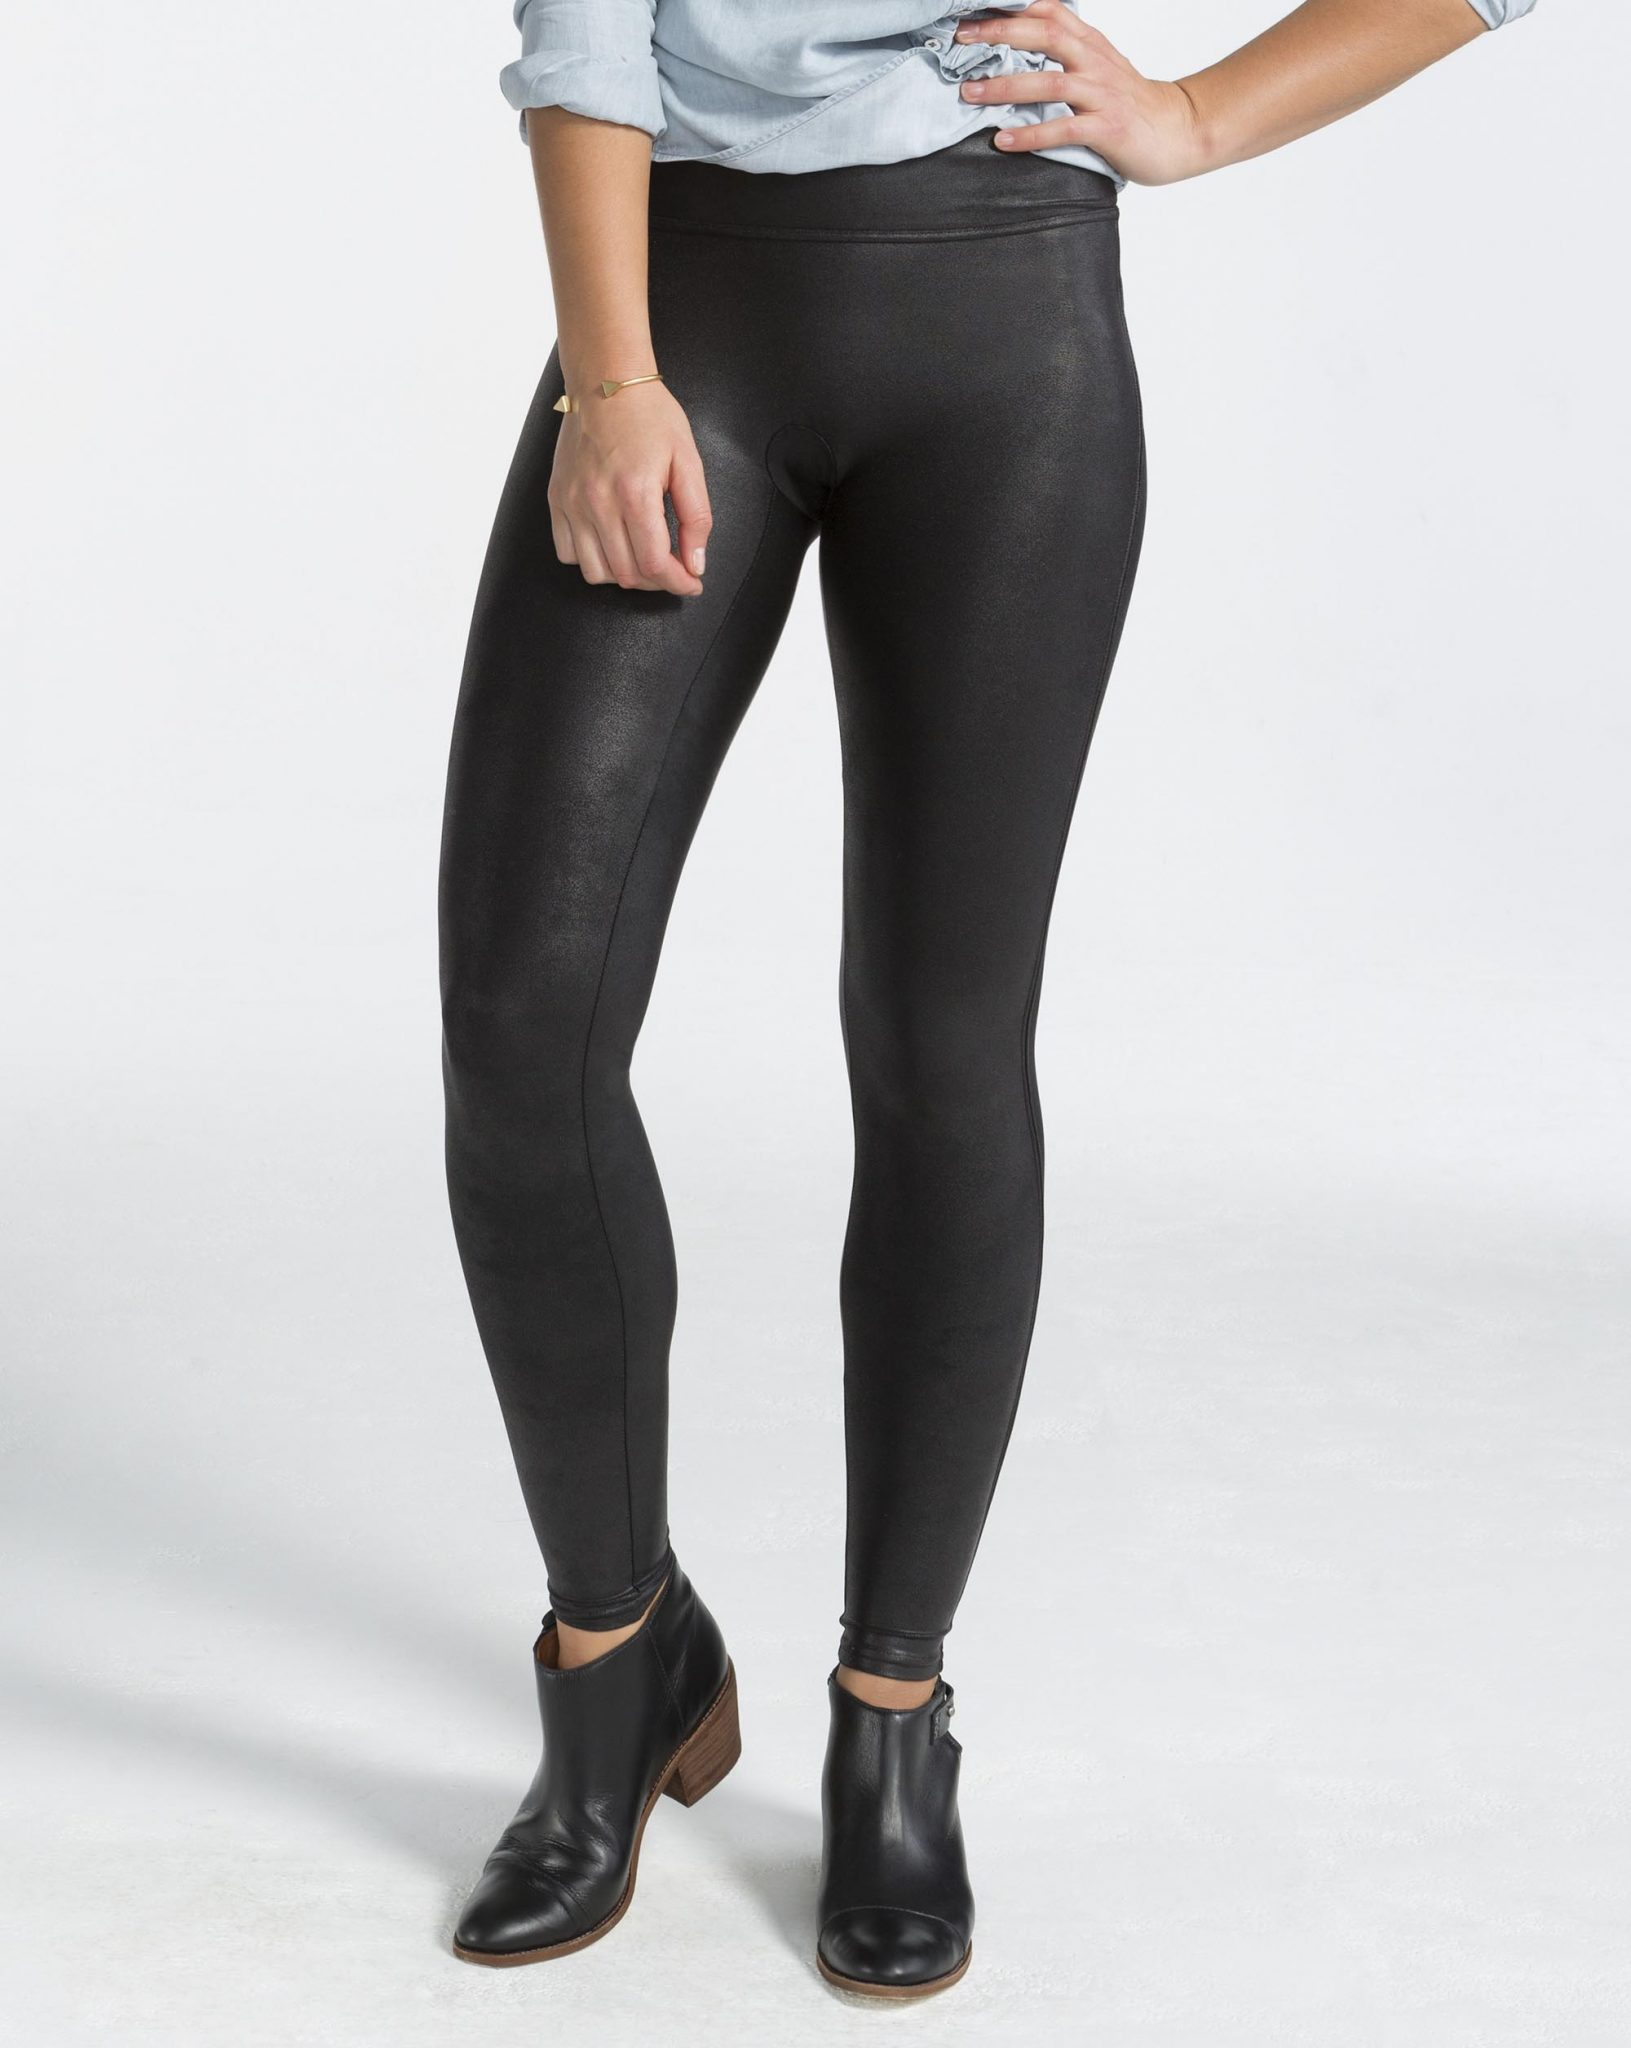 6914dac90df06 Spanx Faux Leather Leggings | Inner Secrets